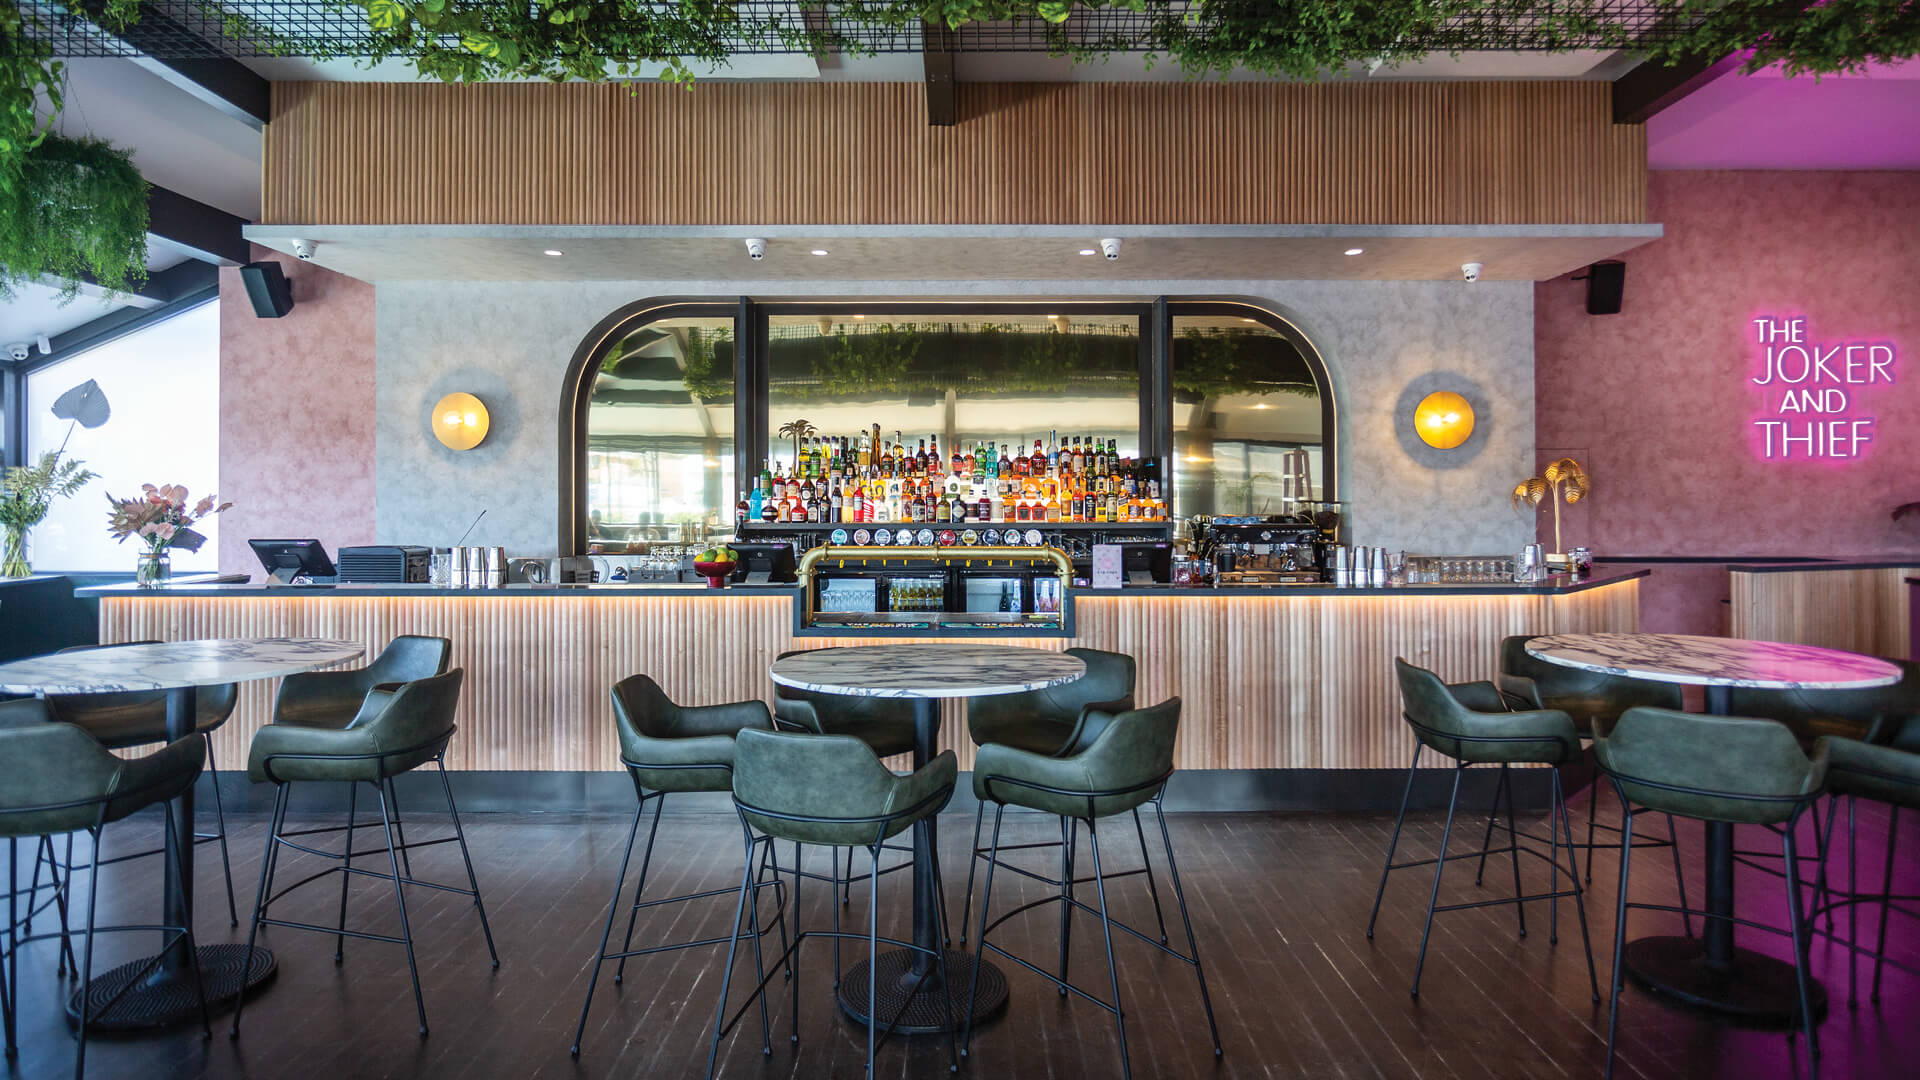 The Joker and Thief bar and restaurant in Terrigal oceanfront, Australia | The Joker and Thief by Fabric Architecture in collaboration with Studio Highfield  | STIRworld